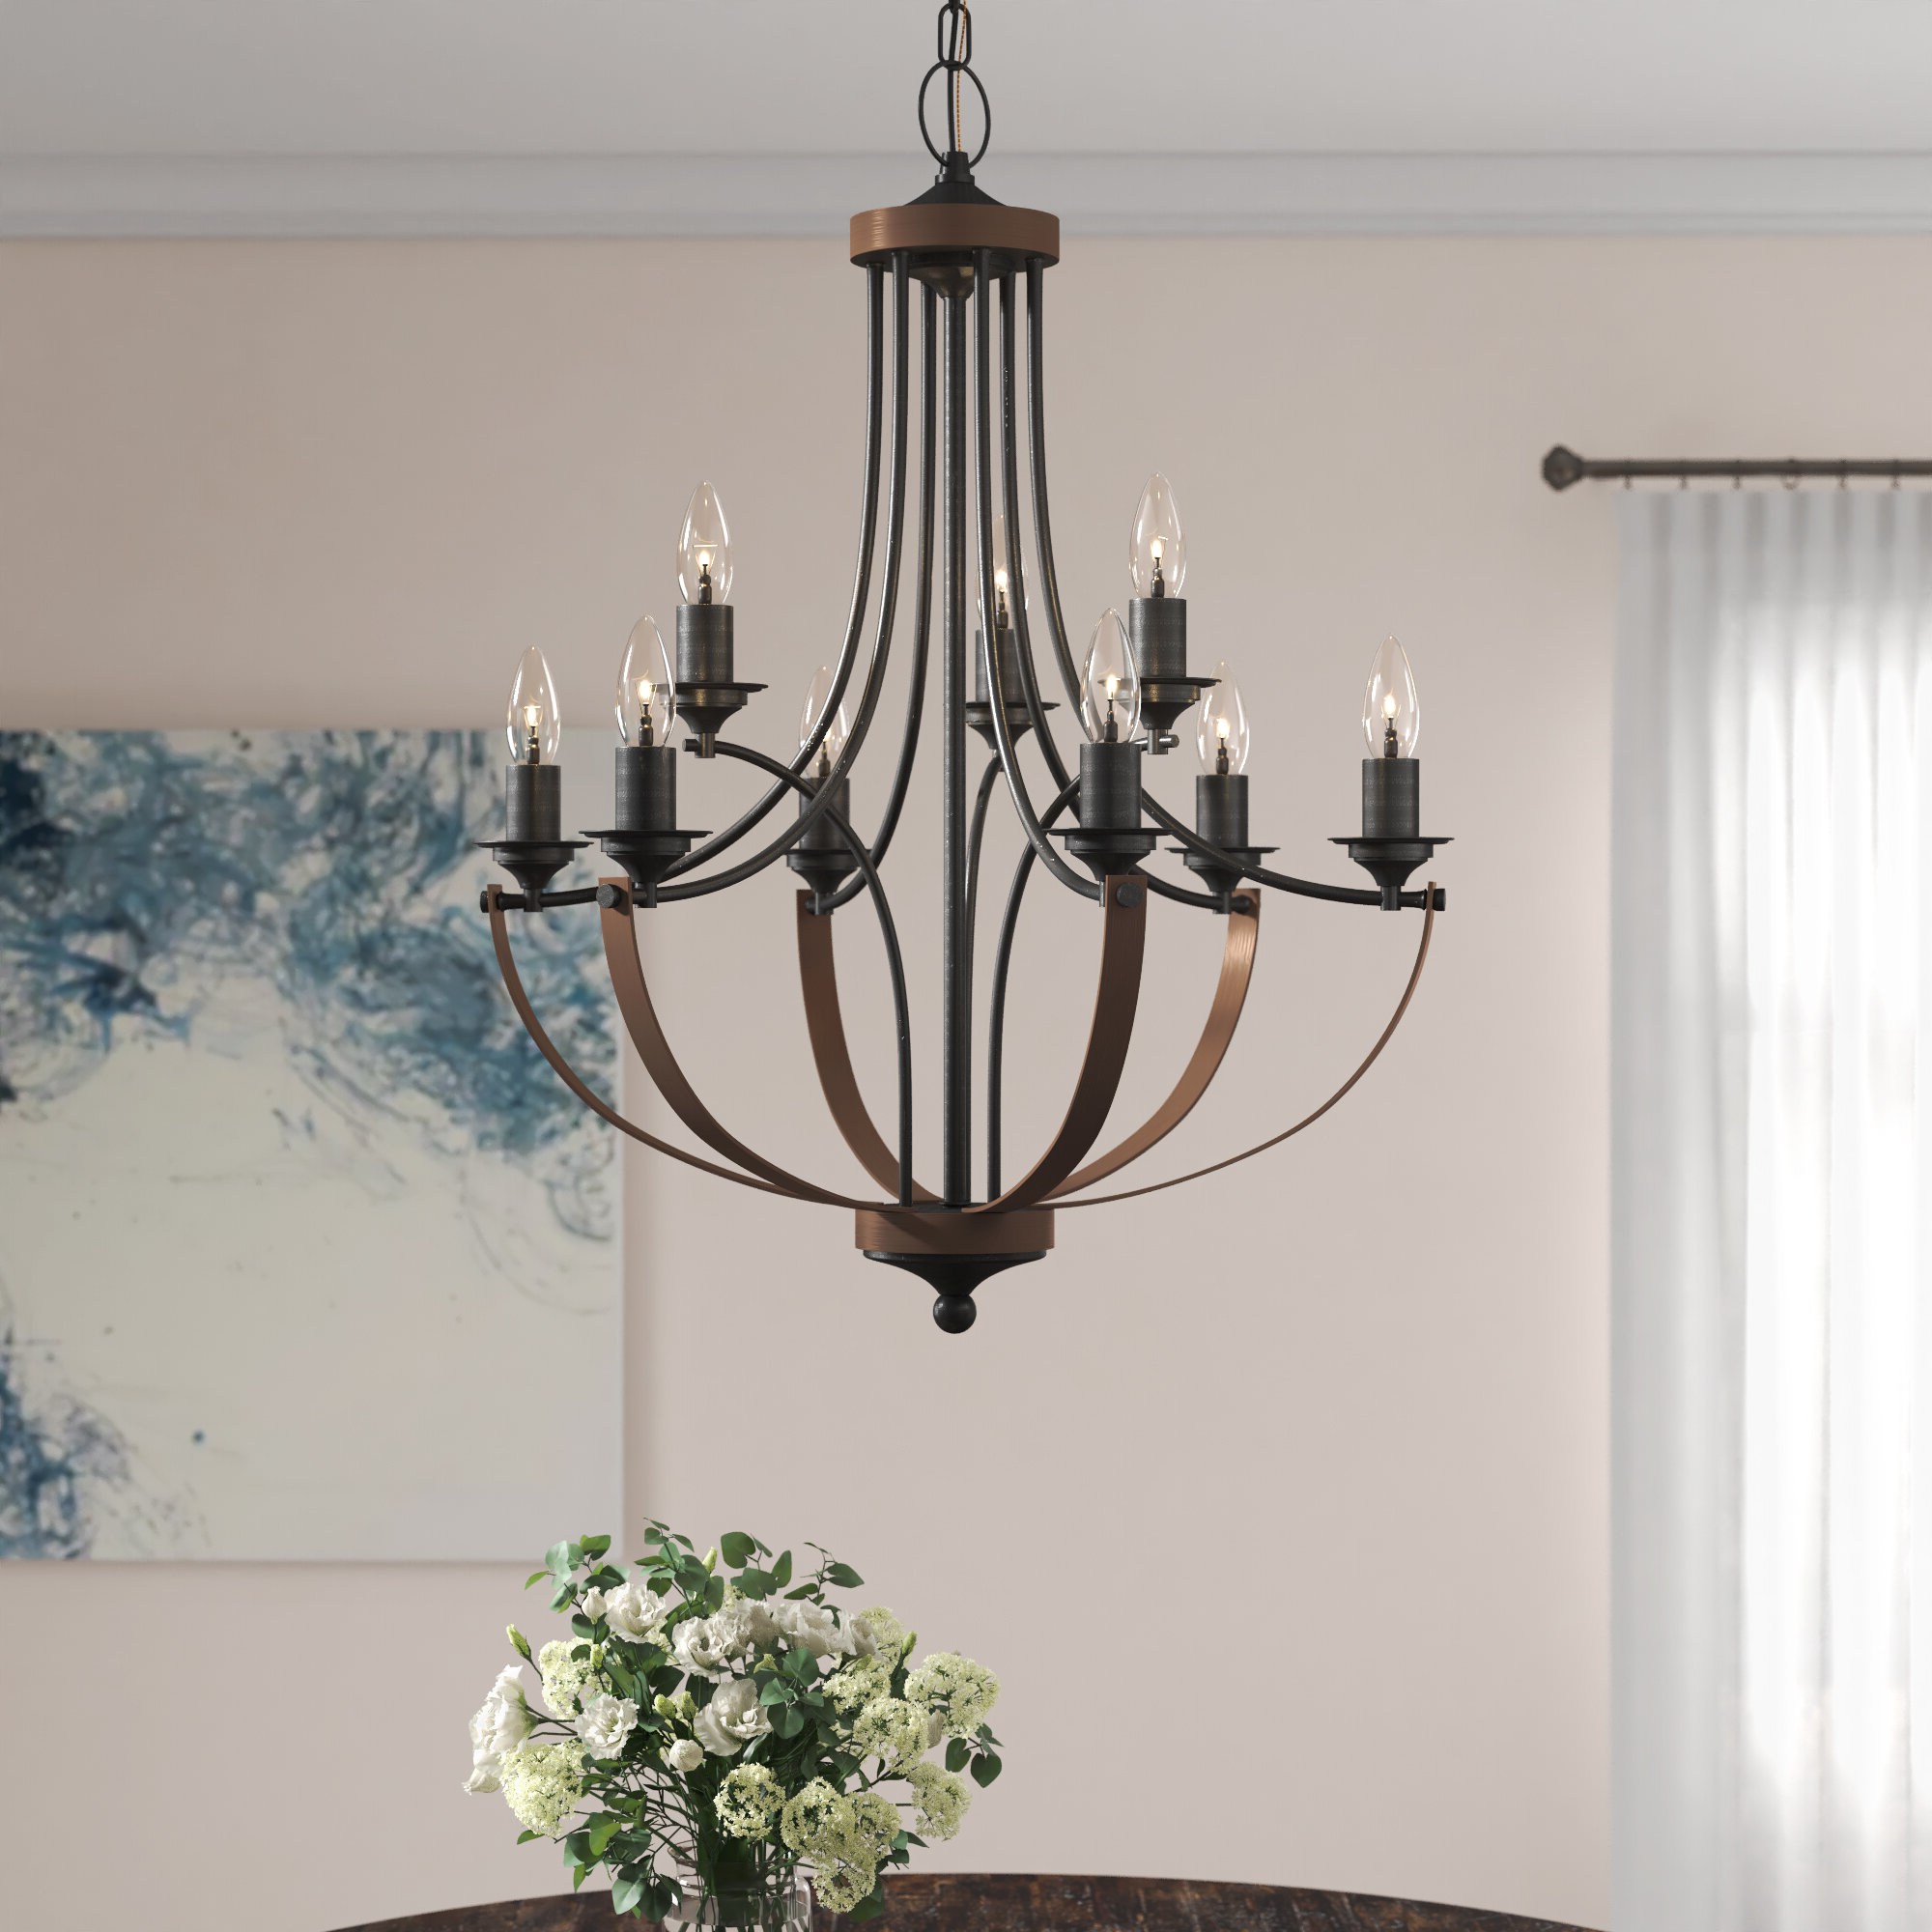 Latest Watford 9 Light Candle Style Chandeliers Regarding Camilla 9 Light Candle Style Chandelier (View 7 of 25)